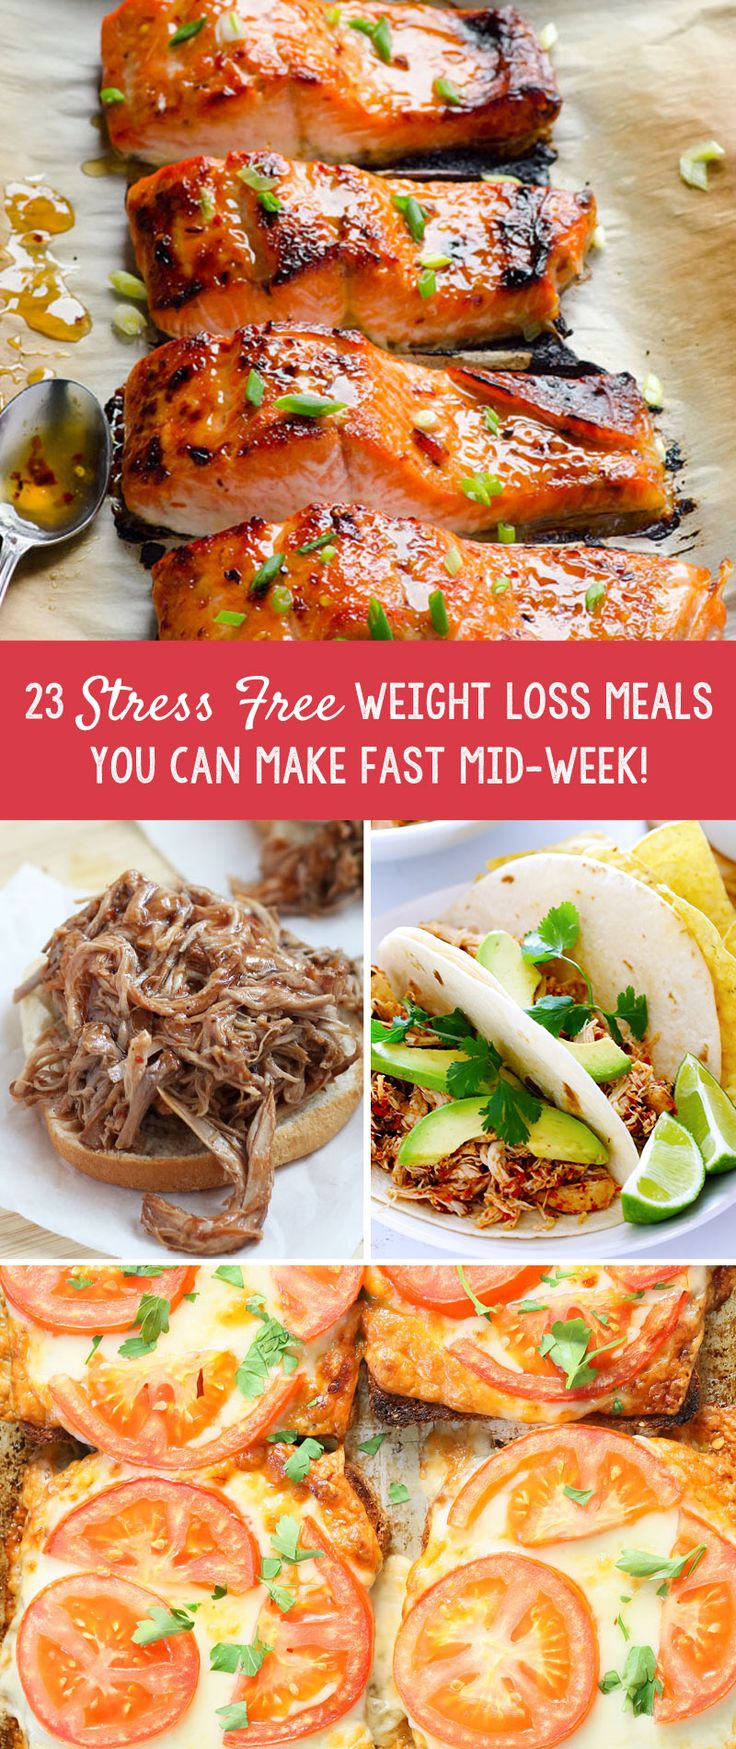 23 Stress Free Weight Loss Meals You Can Make Fast Mid-Week!